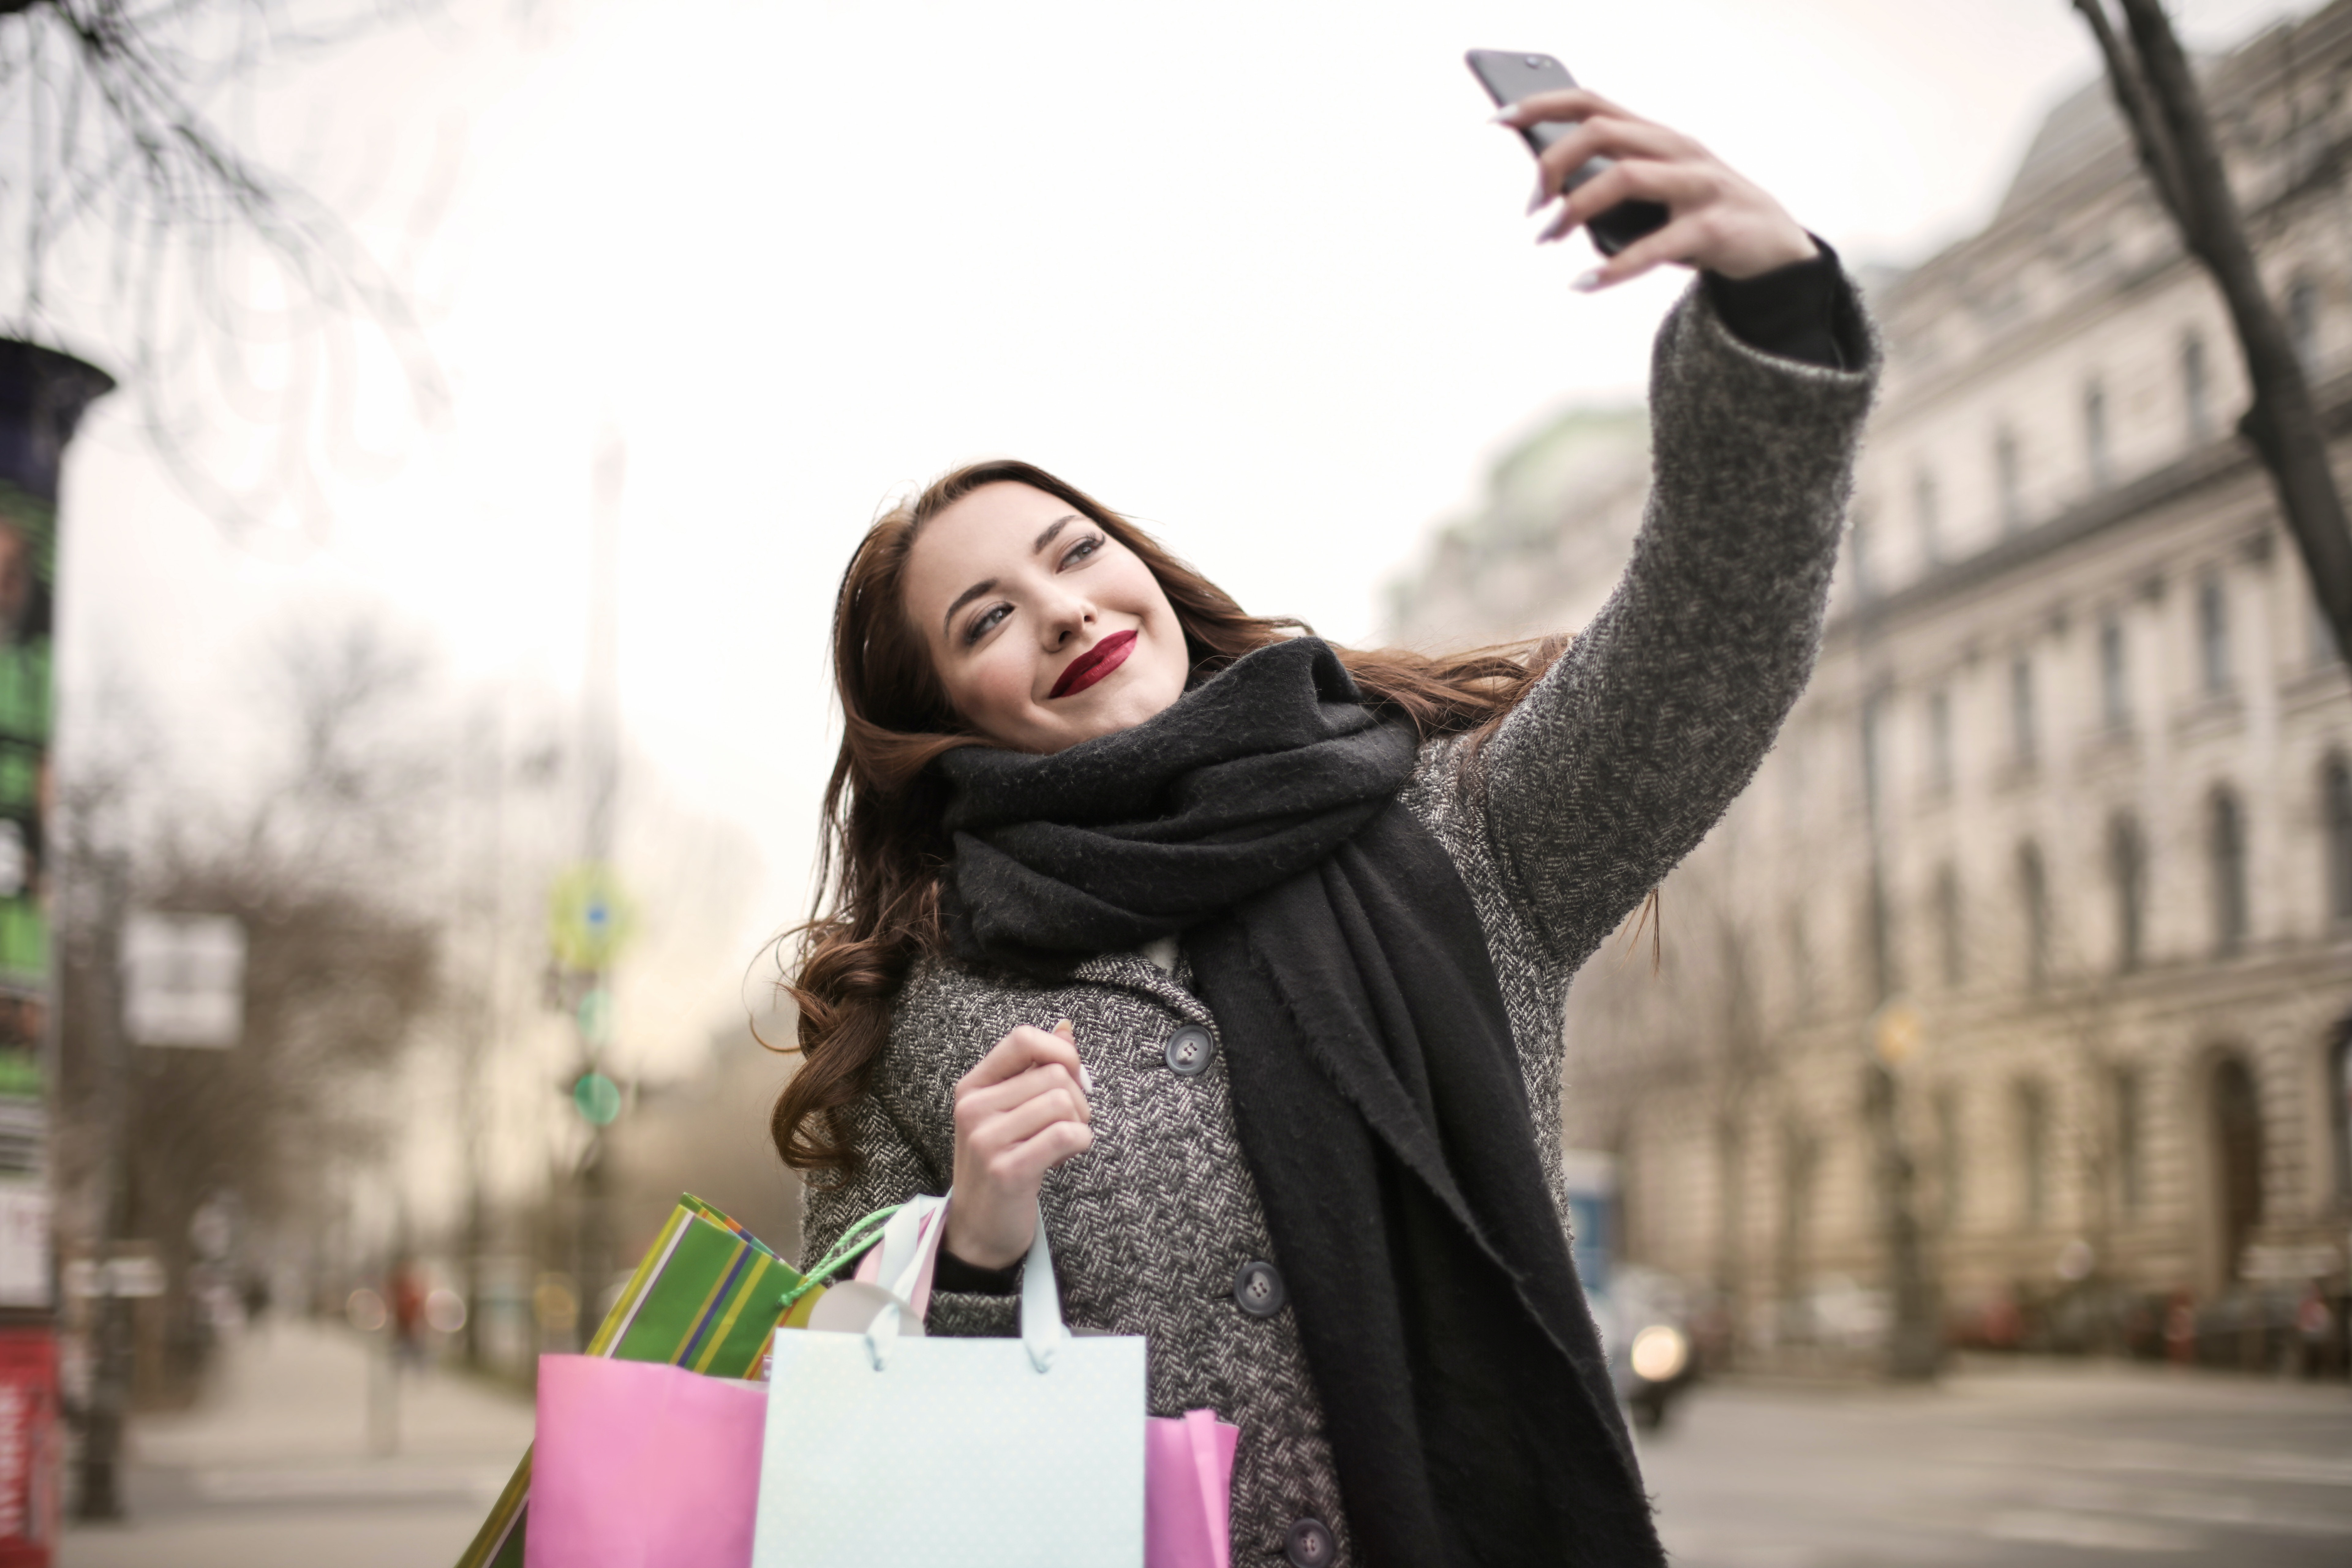 Girl holding shopping bags and taking a selfie